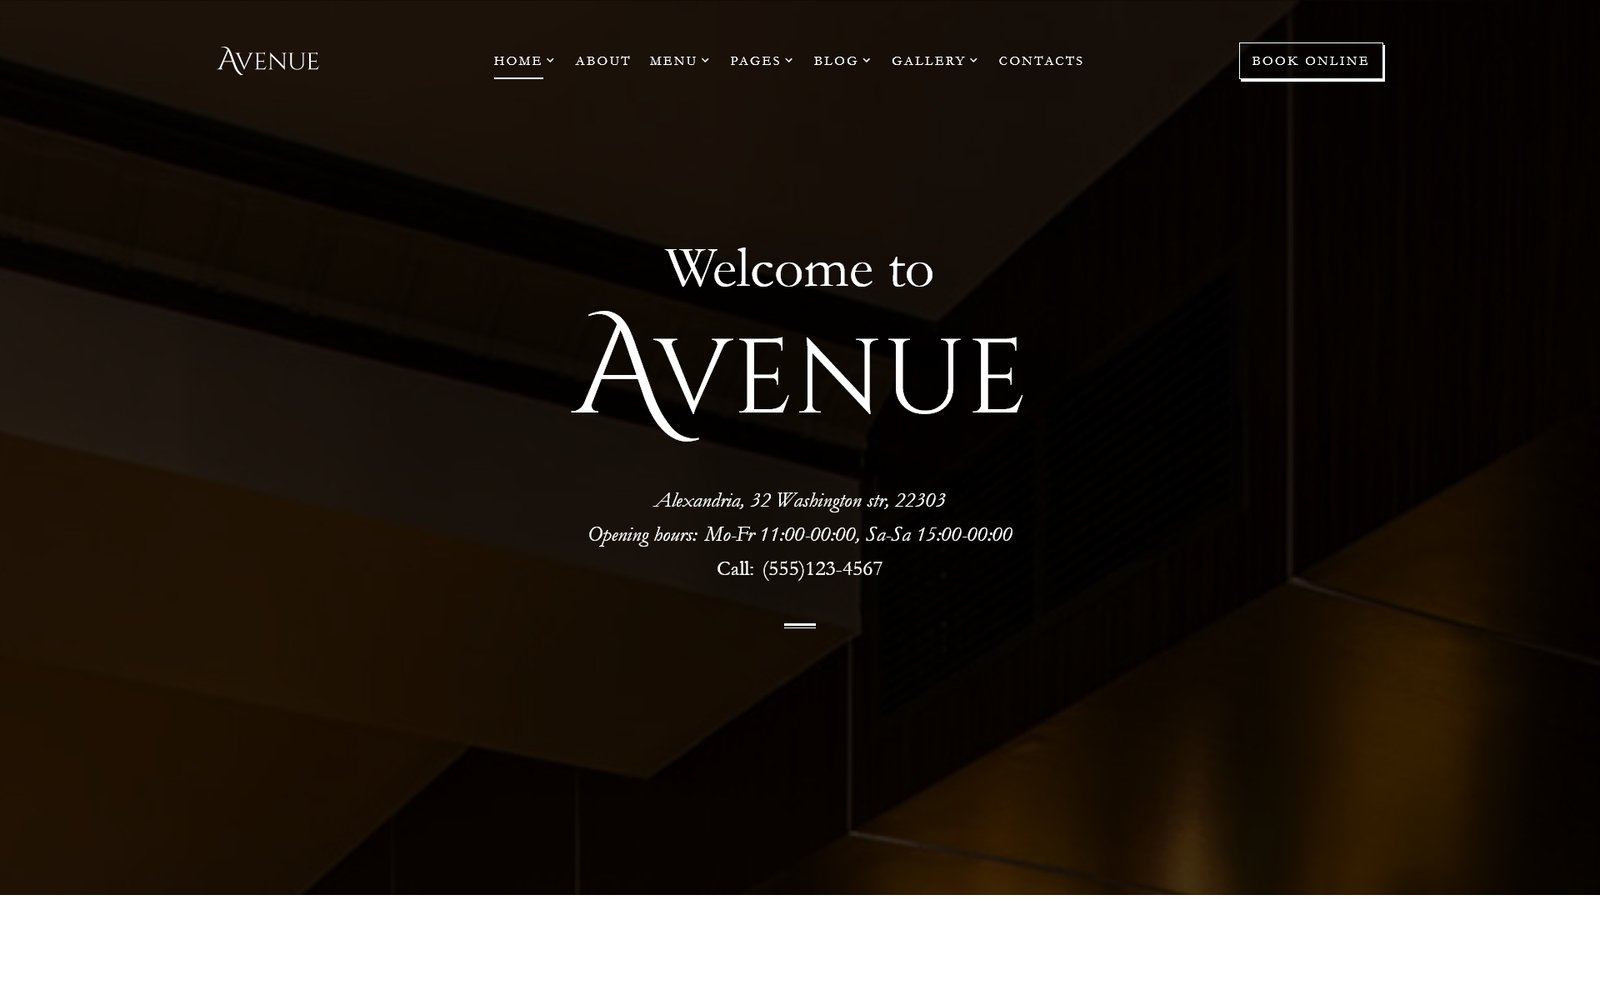 Avenue - Restaurant Responsive Multipage HTML Website Template